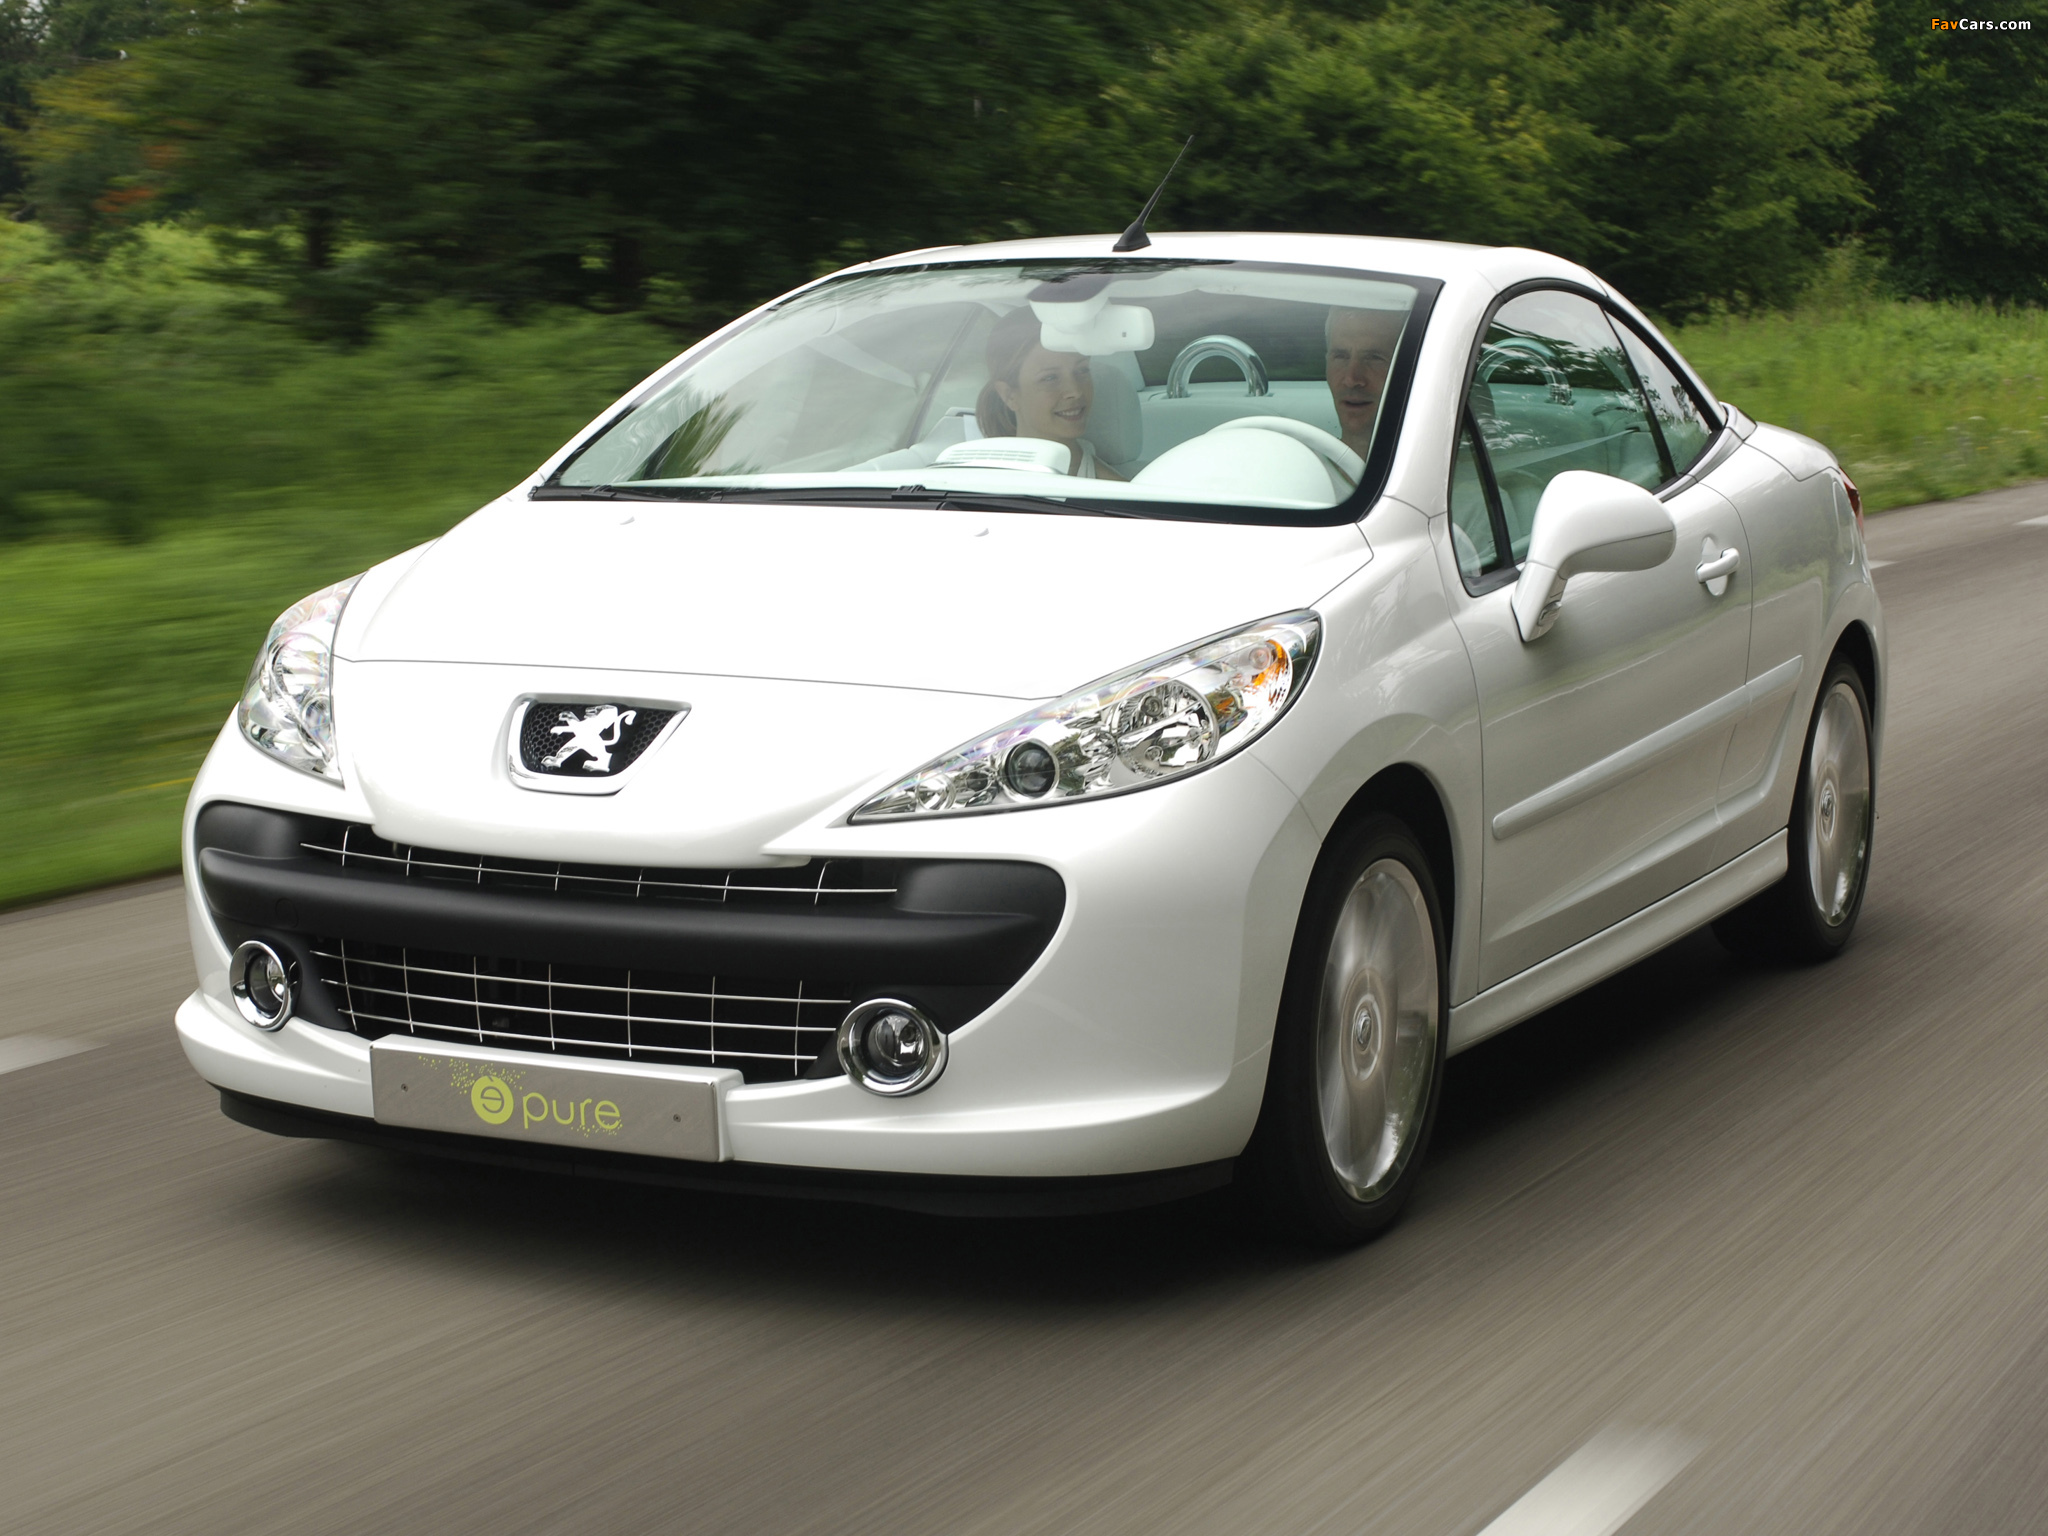 Images of Peugeot 207 Epure Concept 2006 (2048 x 1536)